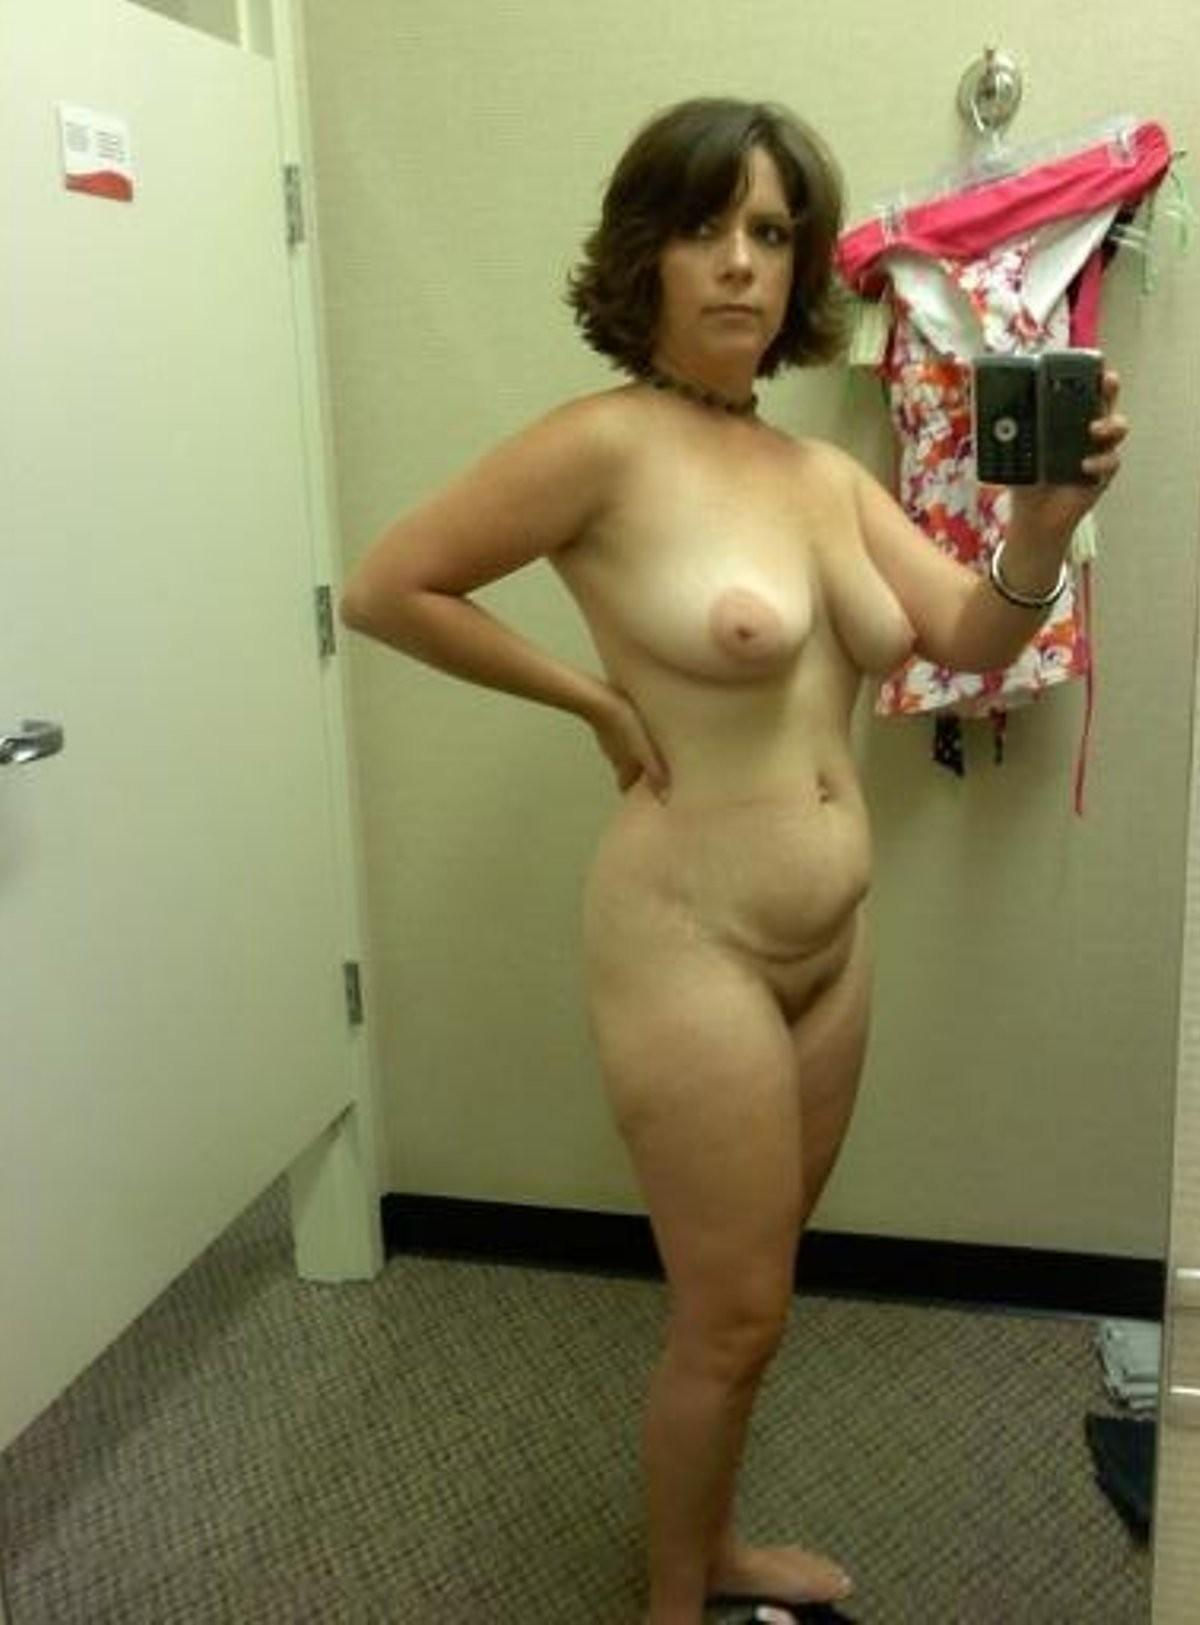 Amateur wife takes mirror selfie while removing dress